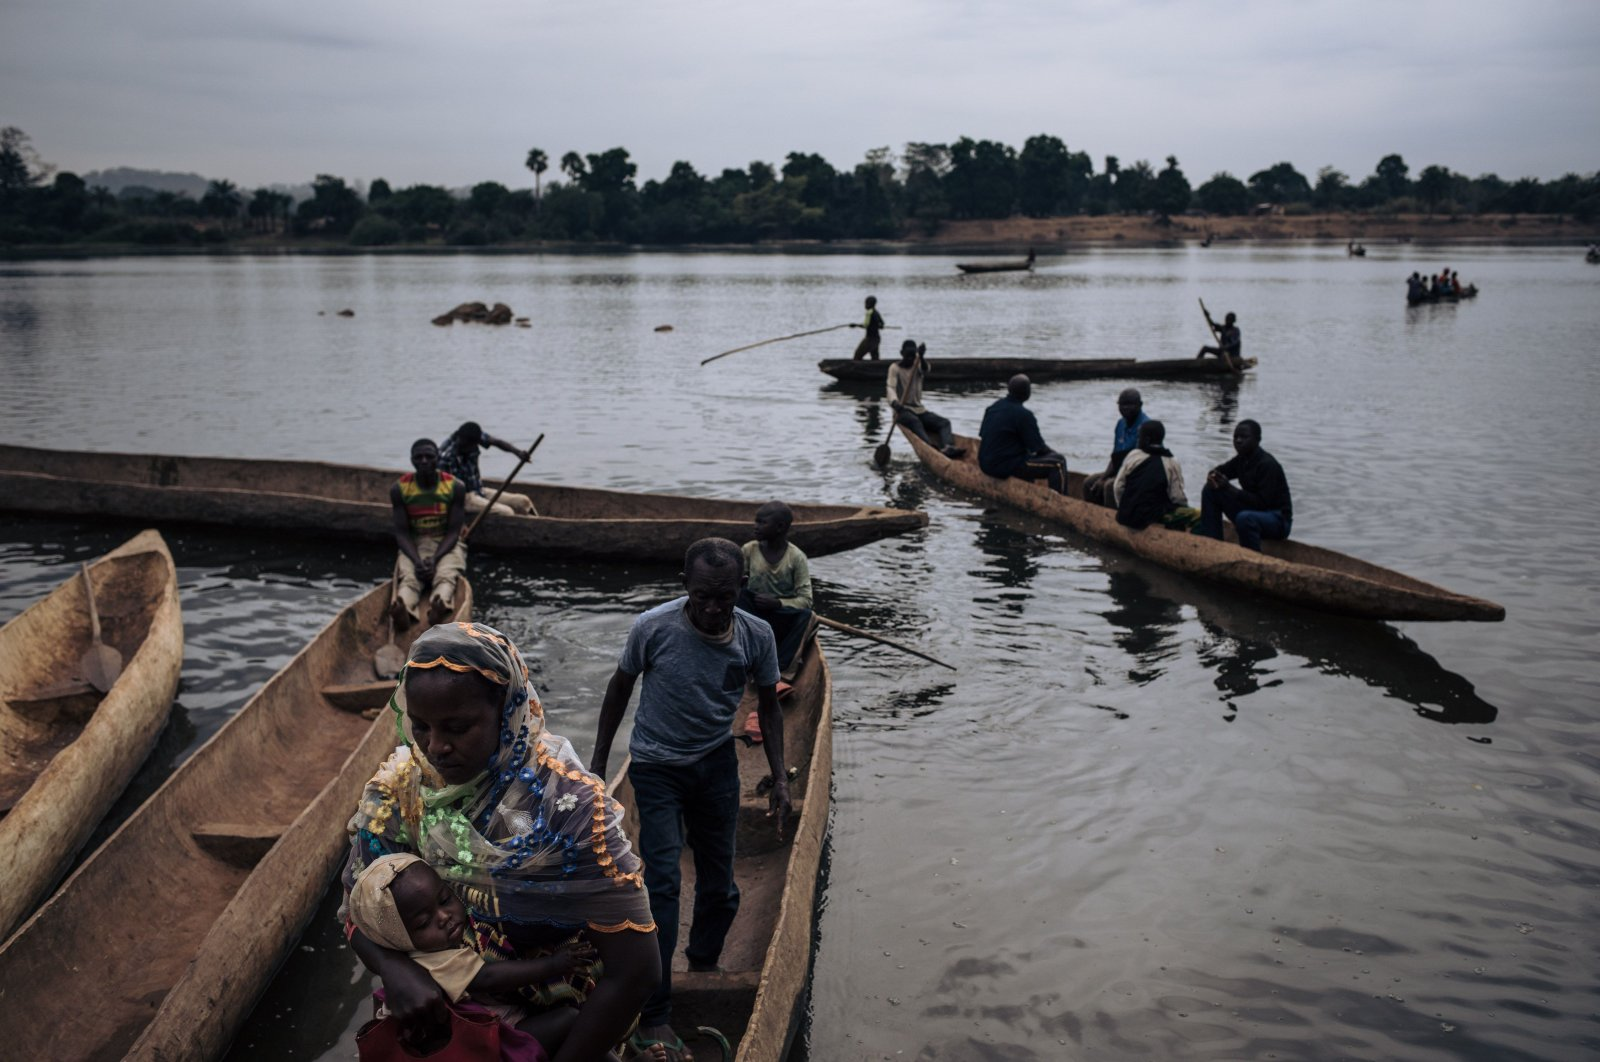 Central African refugees arrive in Ndu after crossing the Mbomou River, which marks the border between the Central African Republic and the Democratic Republic of Congo, on Feb. 5, 2021. (AFP Photo)